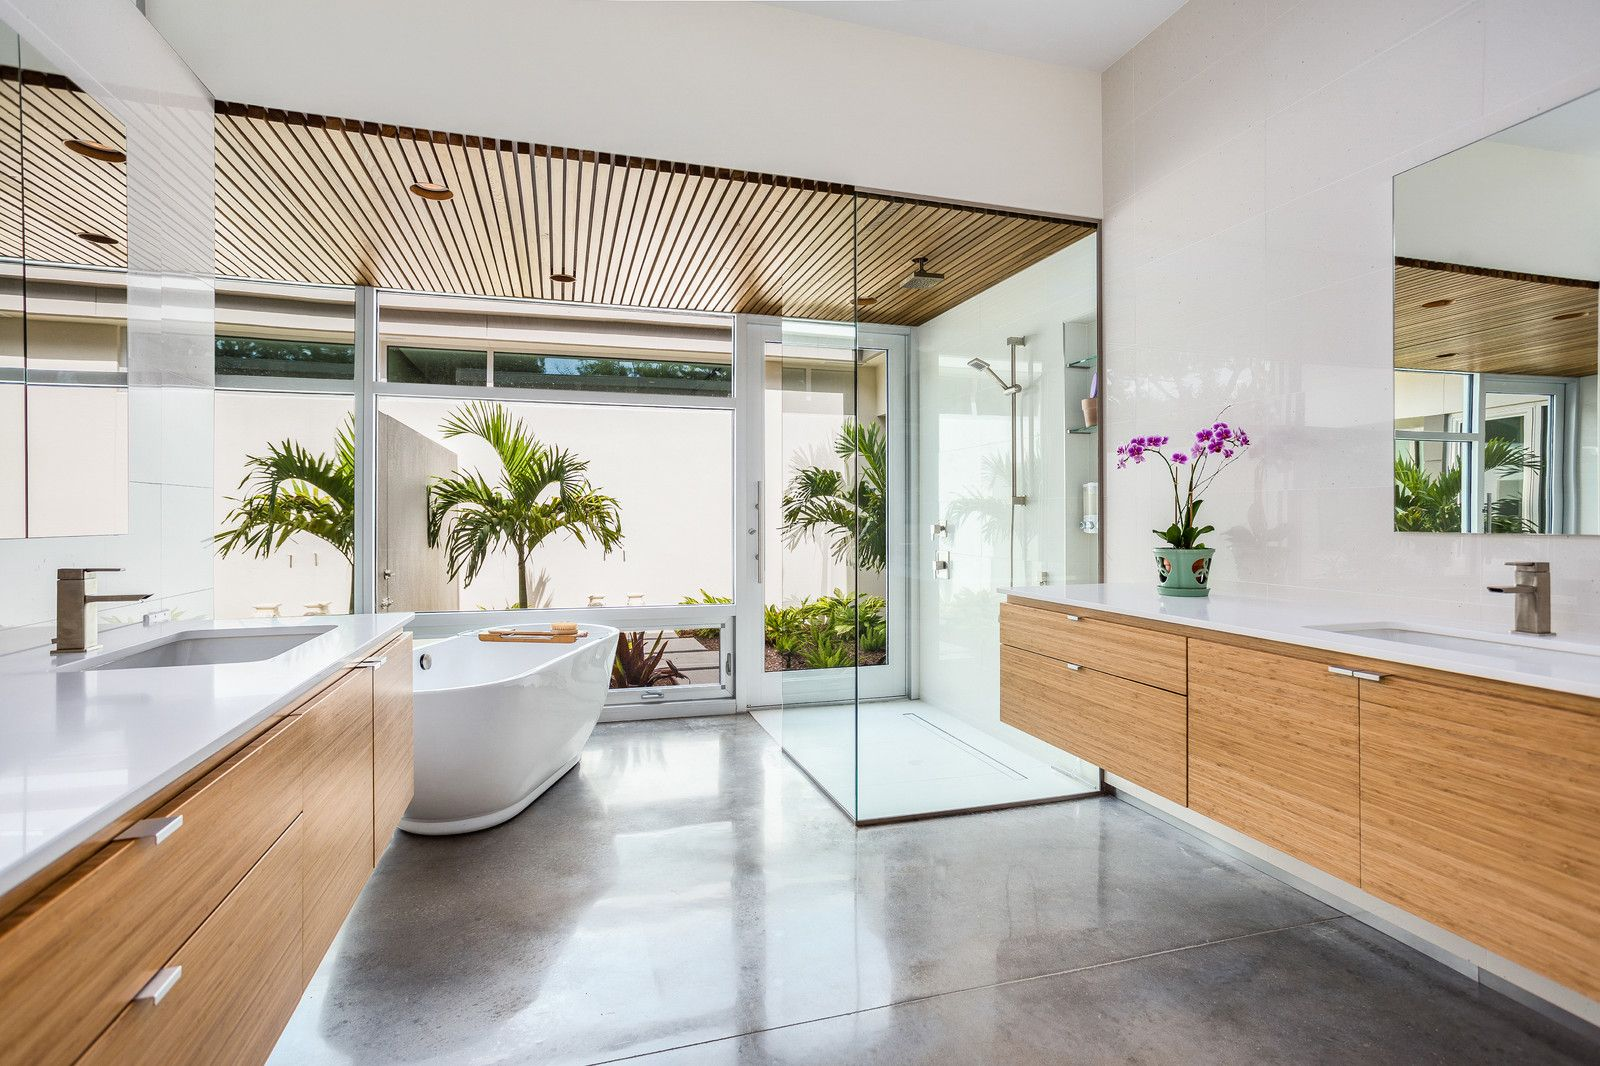 Modern Zen Asian Inspired Home Design Zen Bathroom Concrete Bathroom Design Modern Bathroom Design